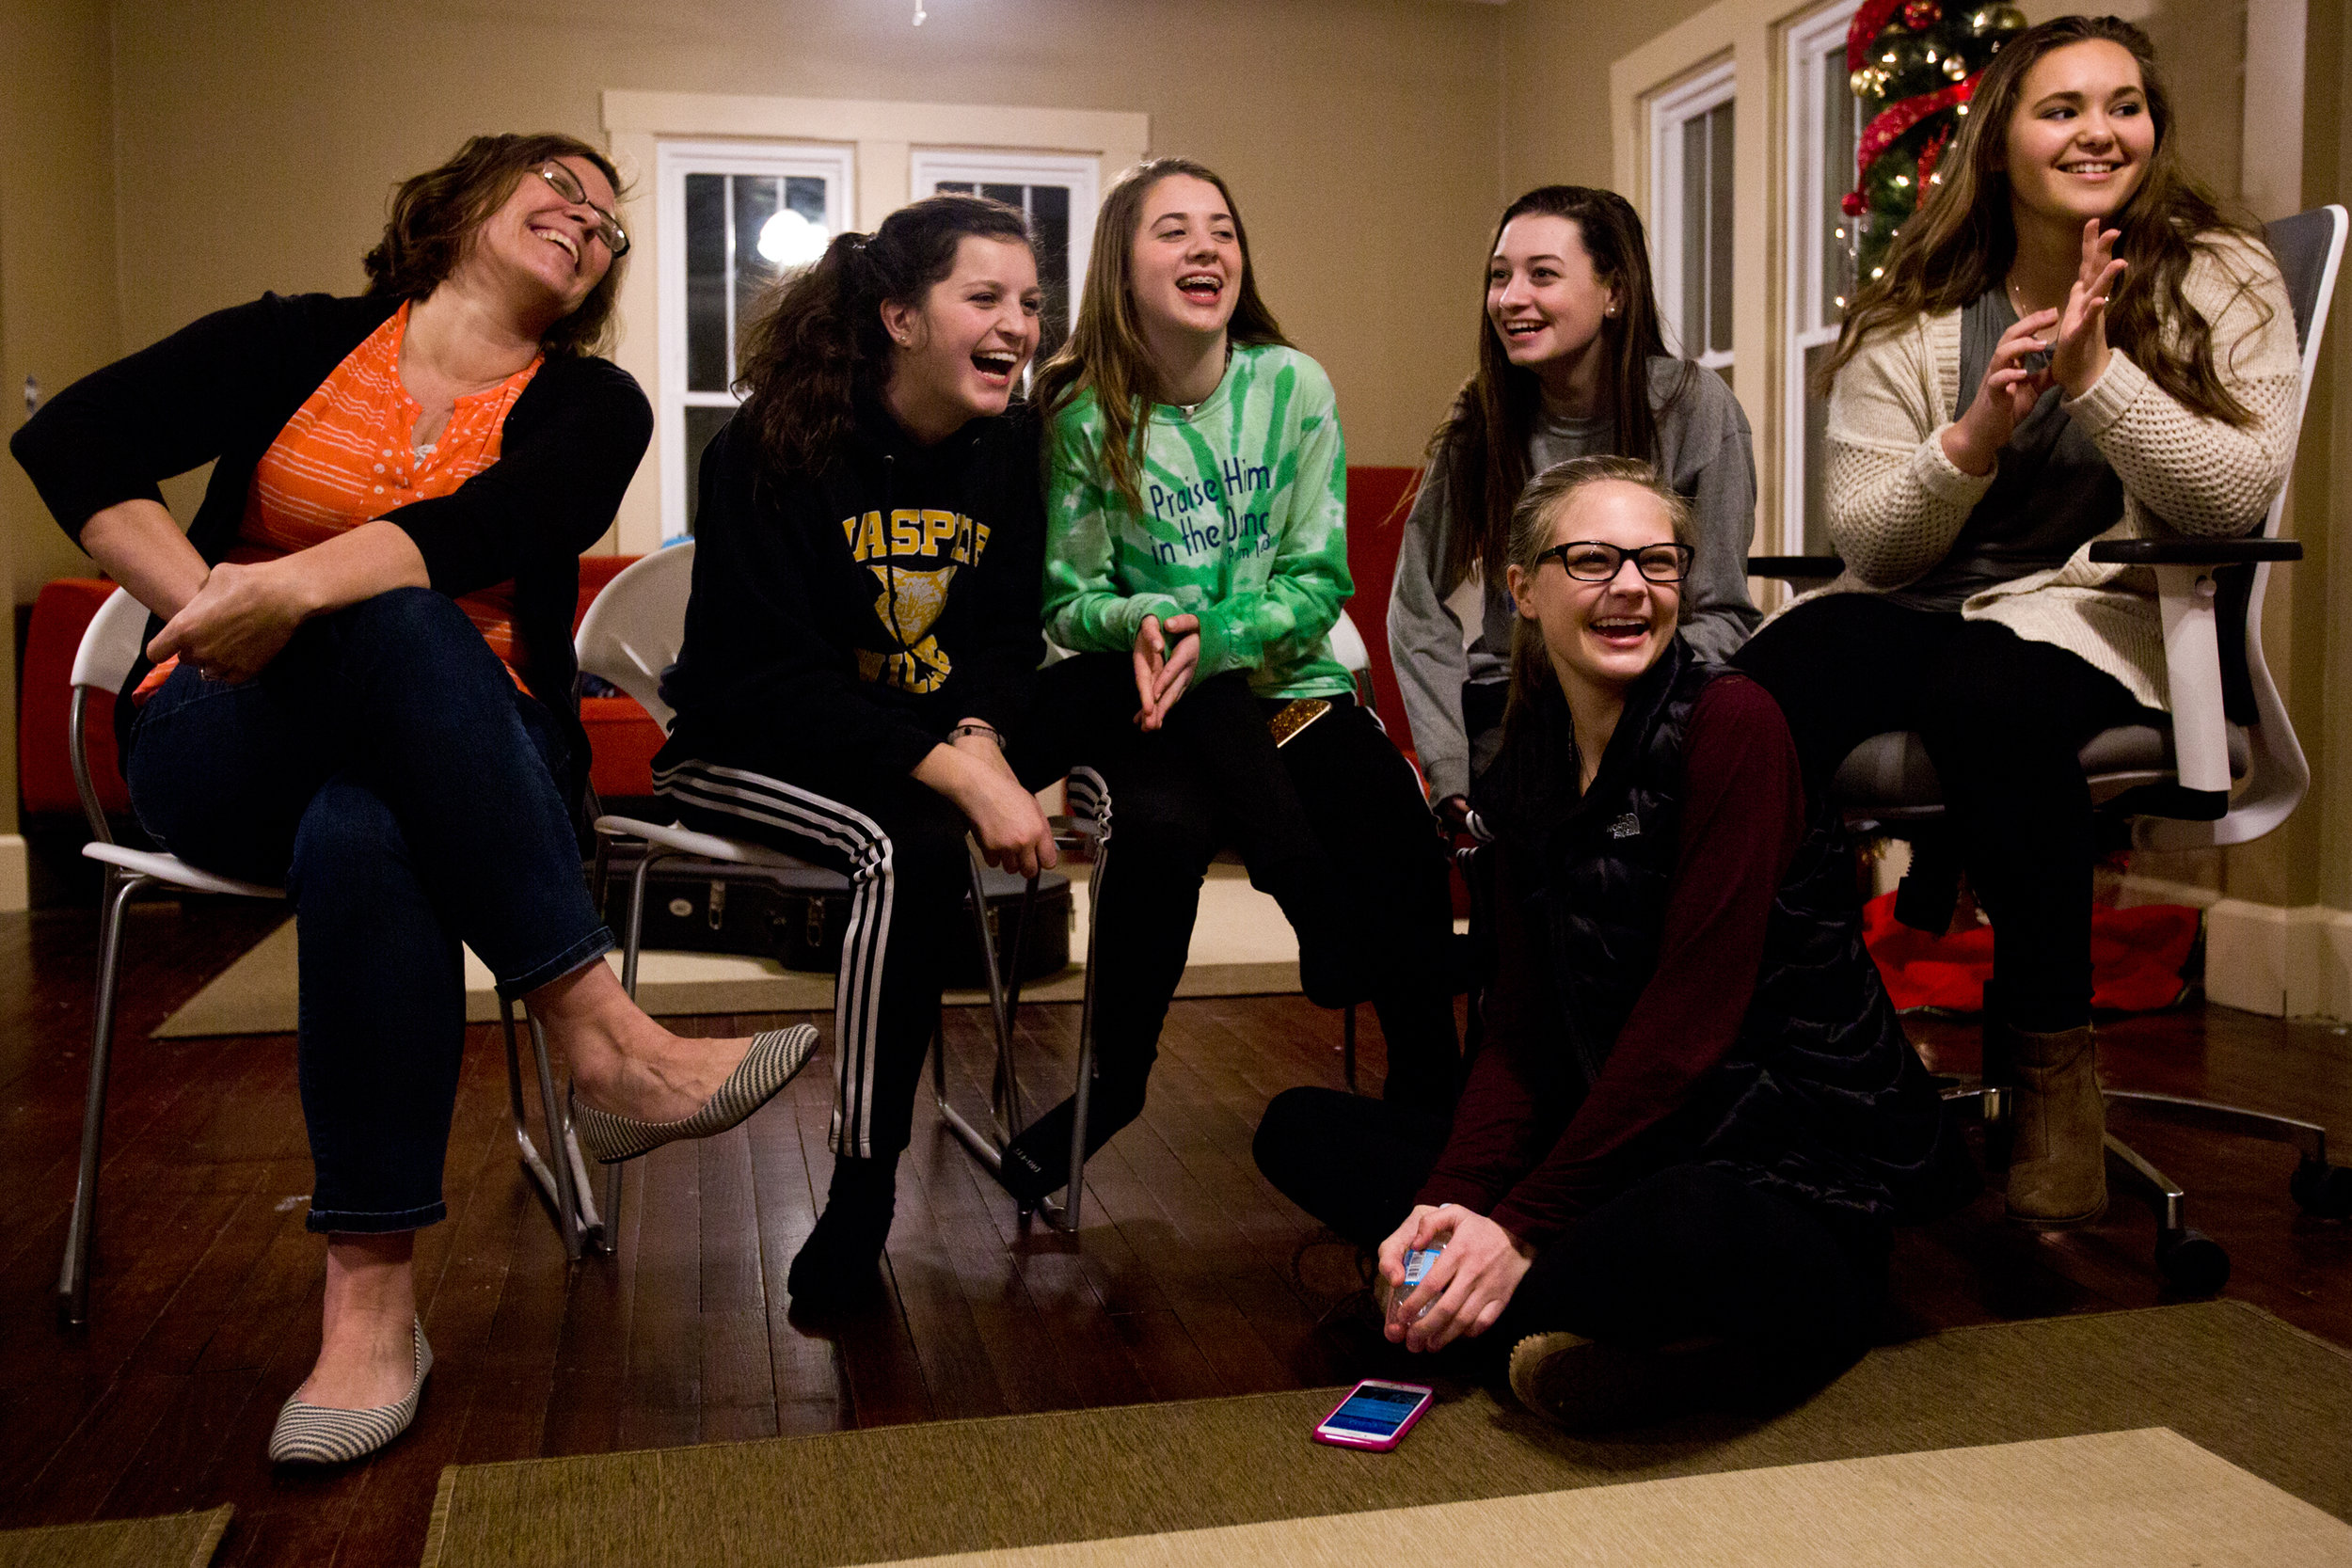 St. John Bosco Youth Ministry Director Angie Greulich, from left, Miah Bromm of Jasper, 15, Gemma Uebelhor of Ferdinand, 15, Chloe Lueken of Jasper, 17, Brianna Mehringer of Jasper, 16, and Madeline Springer of Jasper, 15, played a game during the ministry's Sunday evening gathering at the Bosco House in Jasper.Greulich led a group of high school-aged youth in putting together activities and a time of meditation to help them connect and grow.